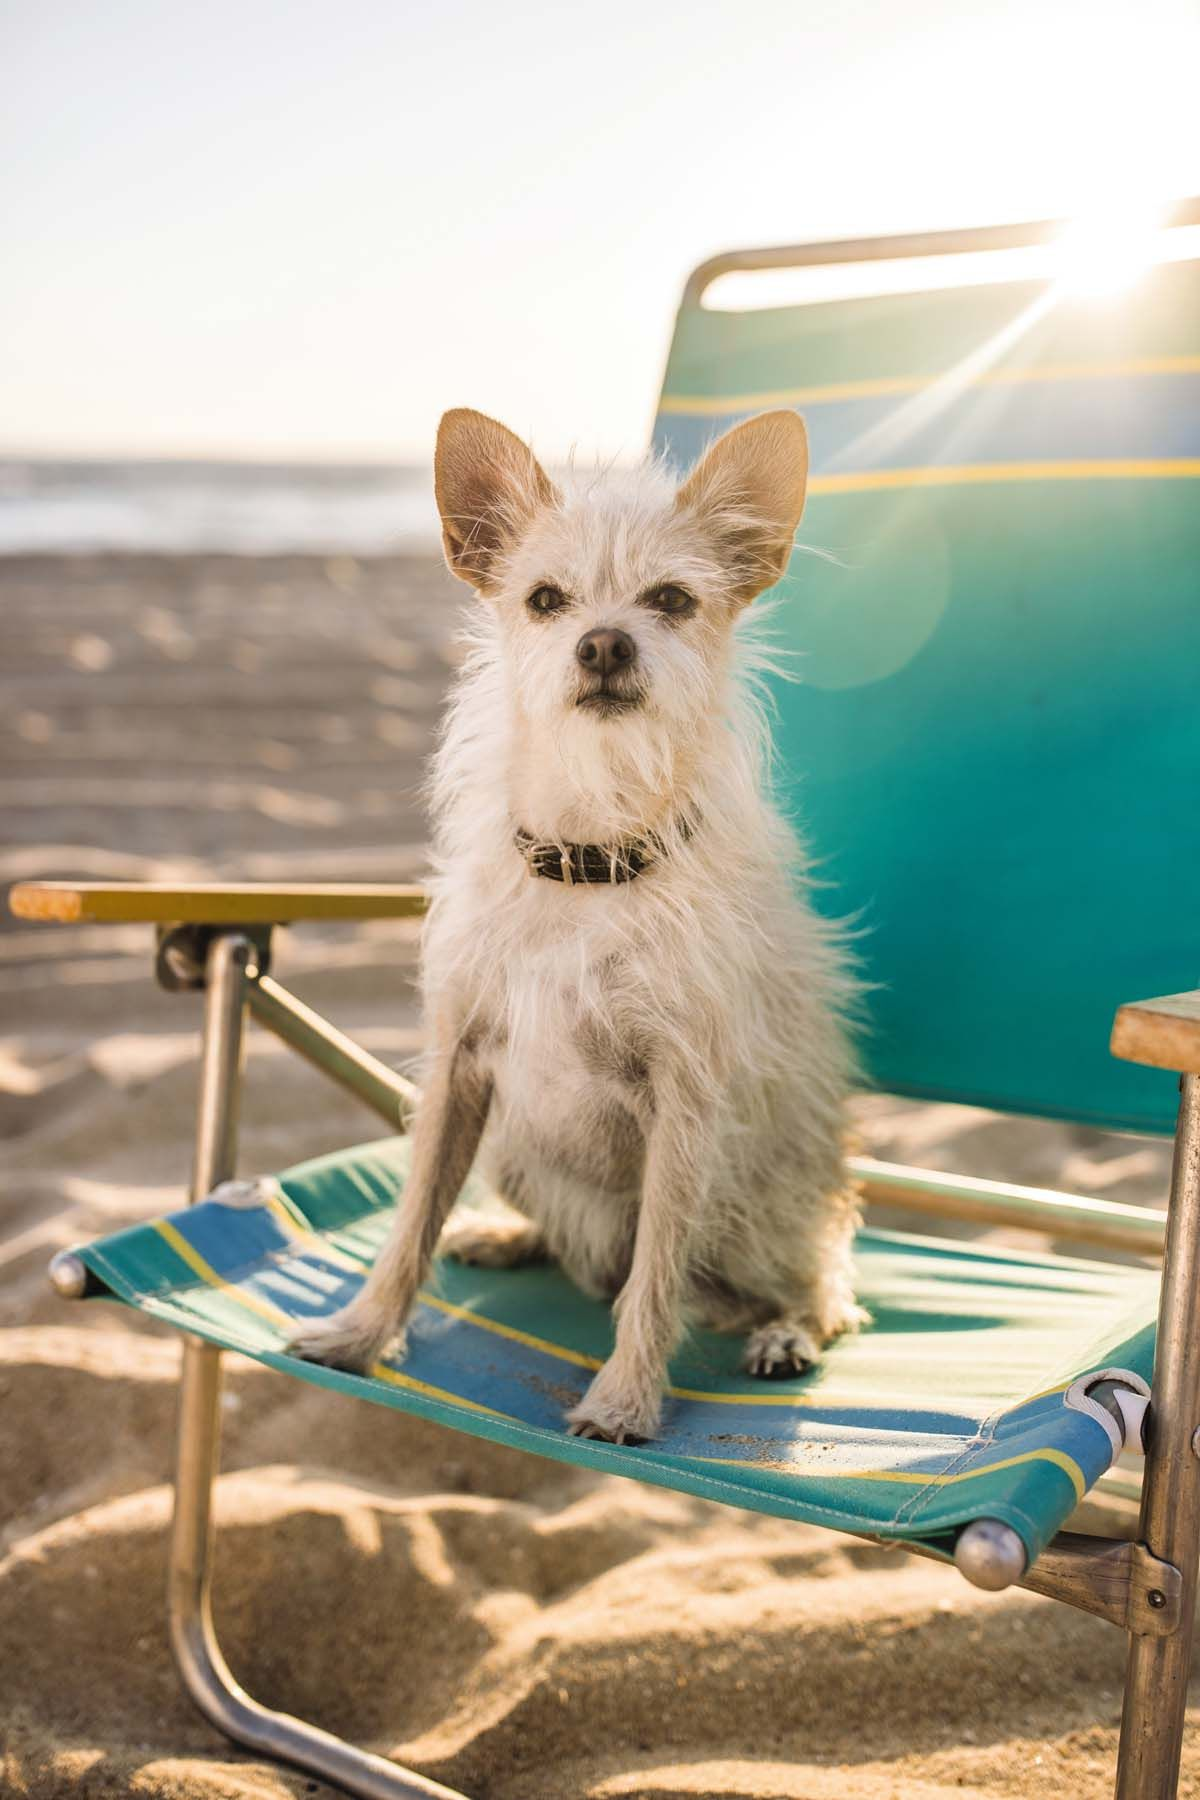 Ready, set... beach! If you're traveling with your pet